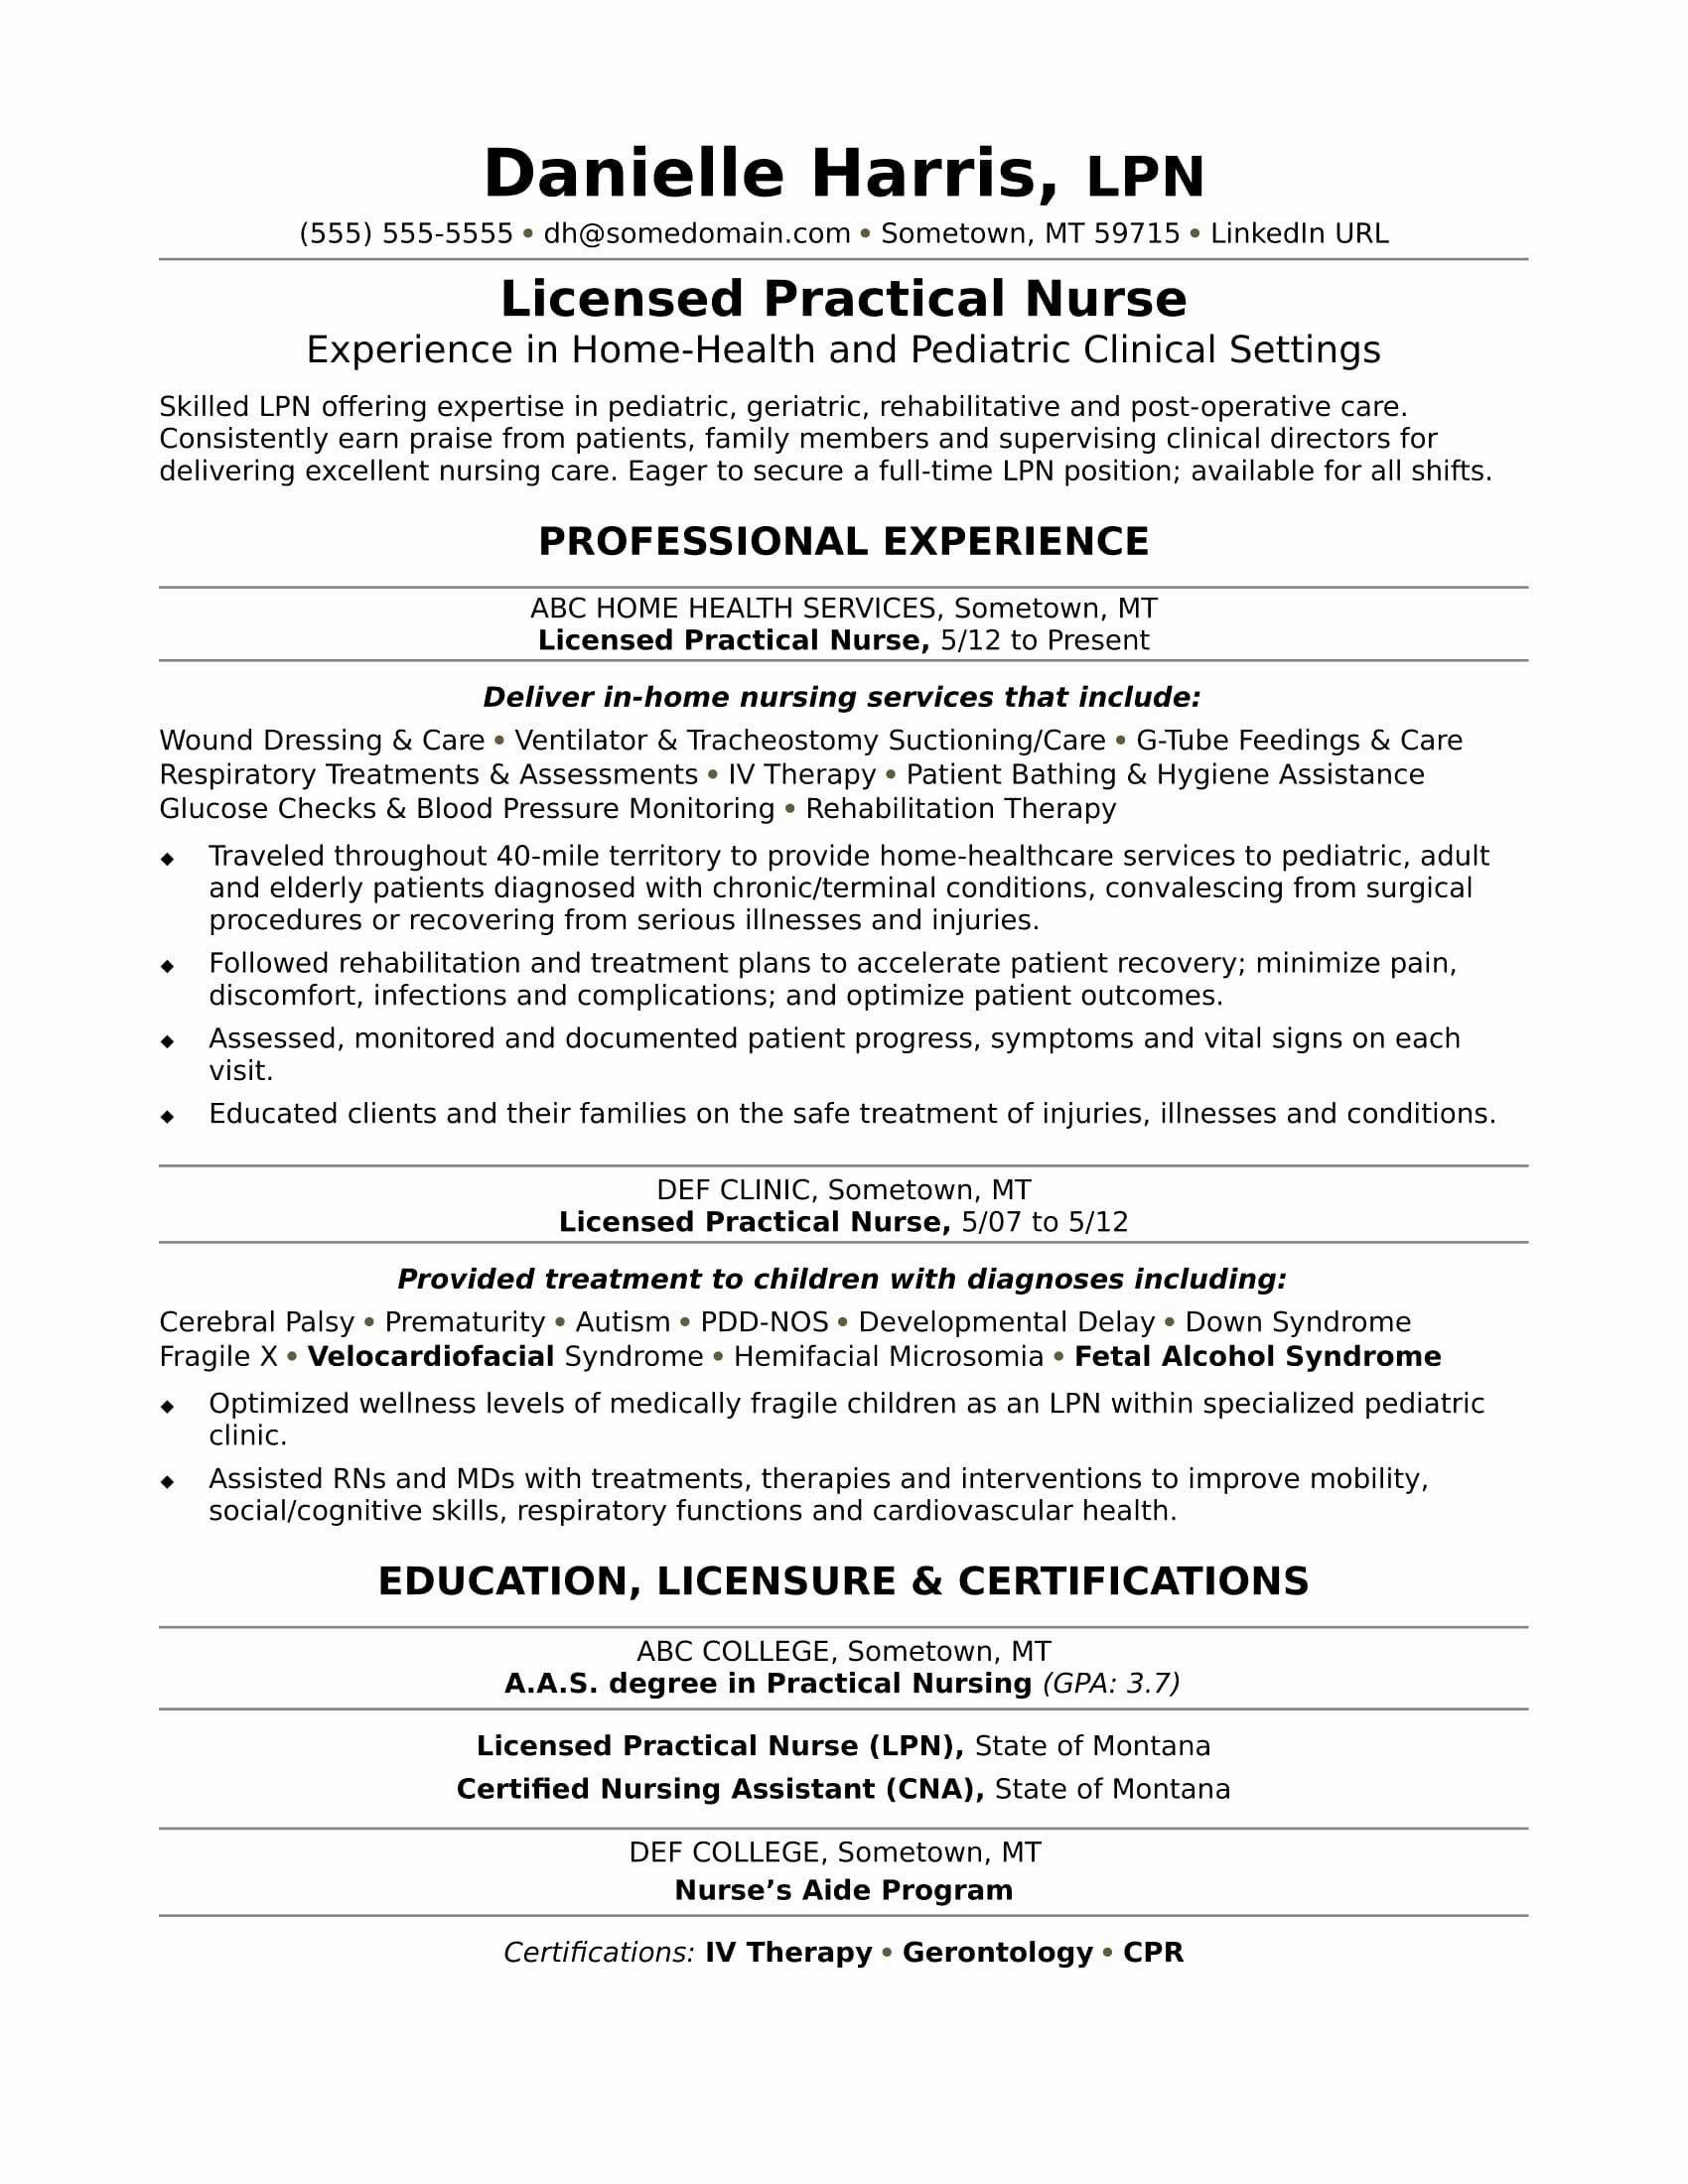 Putting Linkedin On Resume How To Put Resume Linkedin 650 841 Where To Put Linkedin Url In 2020 Nursing Resume Examples New Grad Nursing Resume Nursing Resume Template